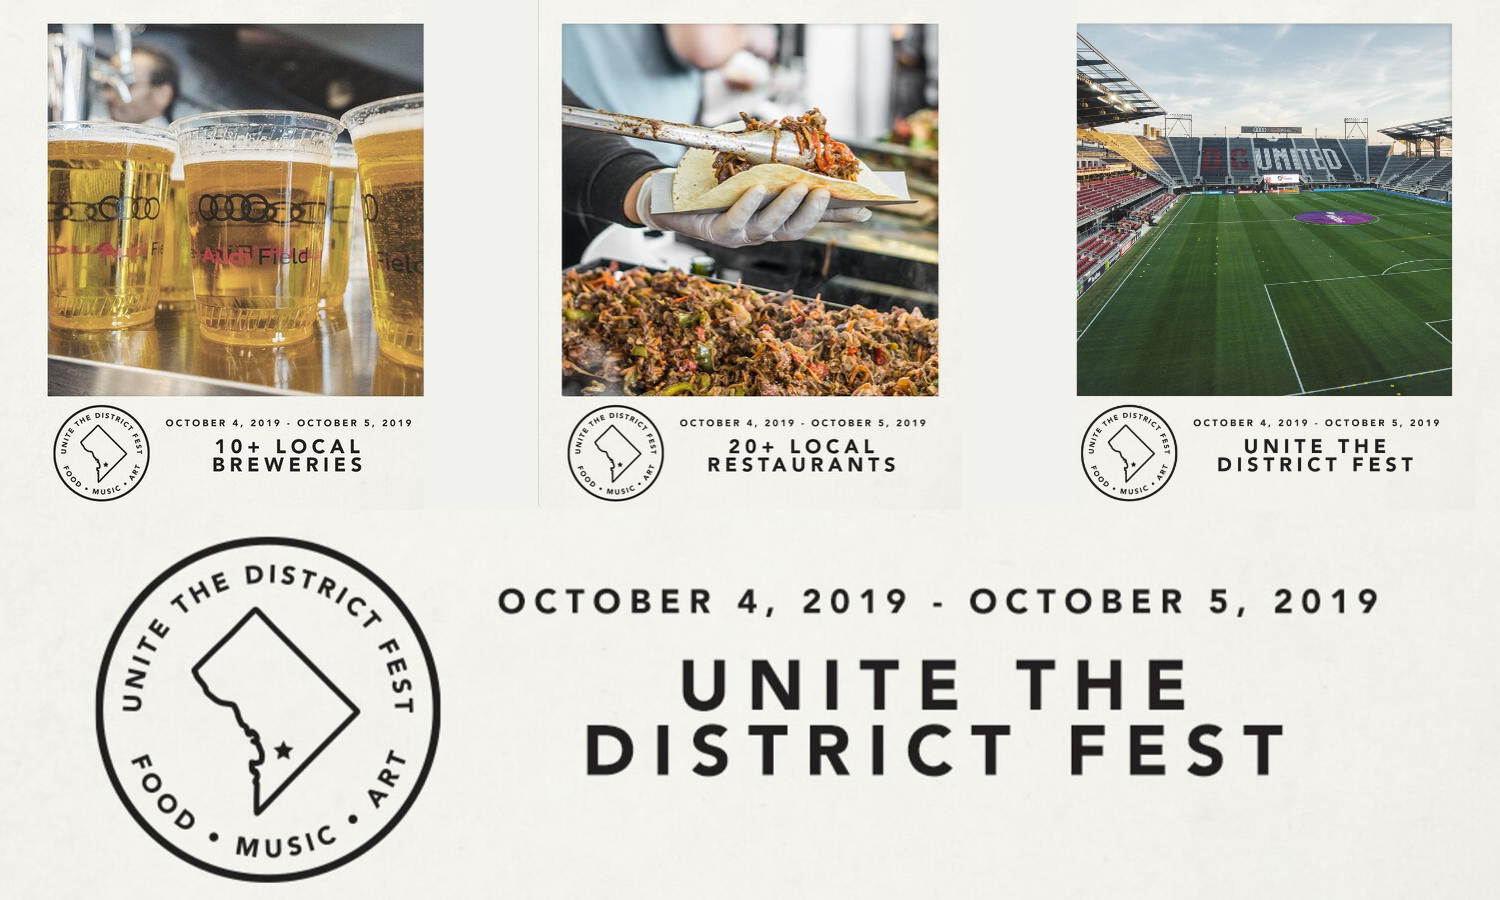 Unite the District Fest